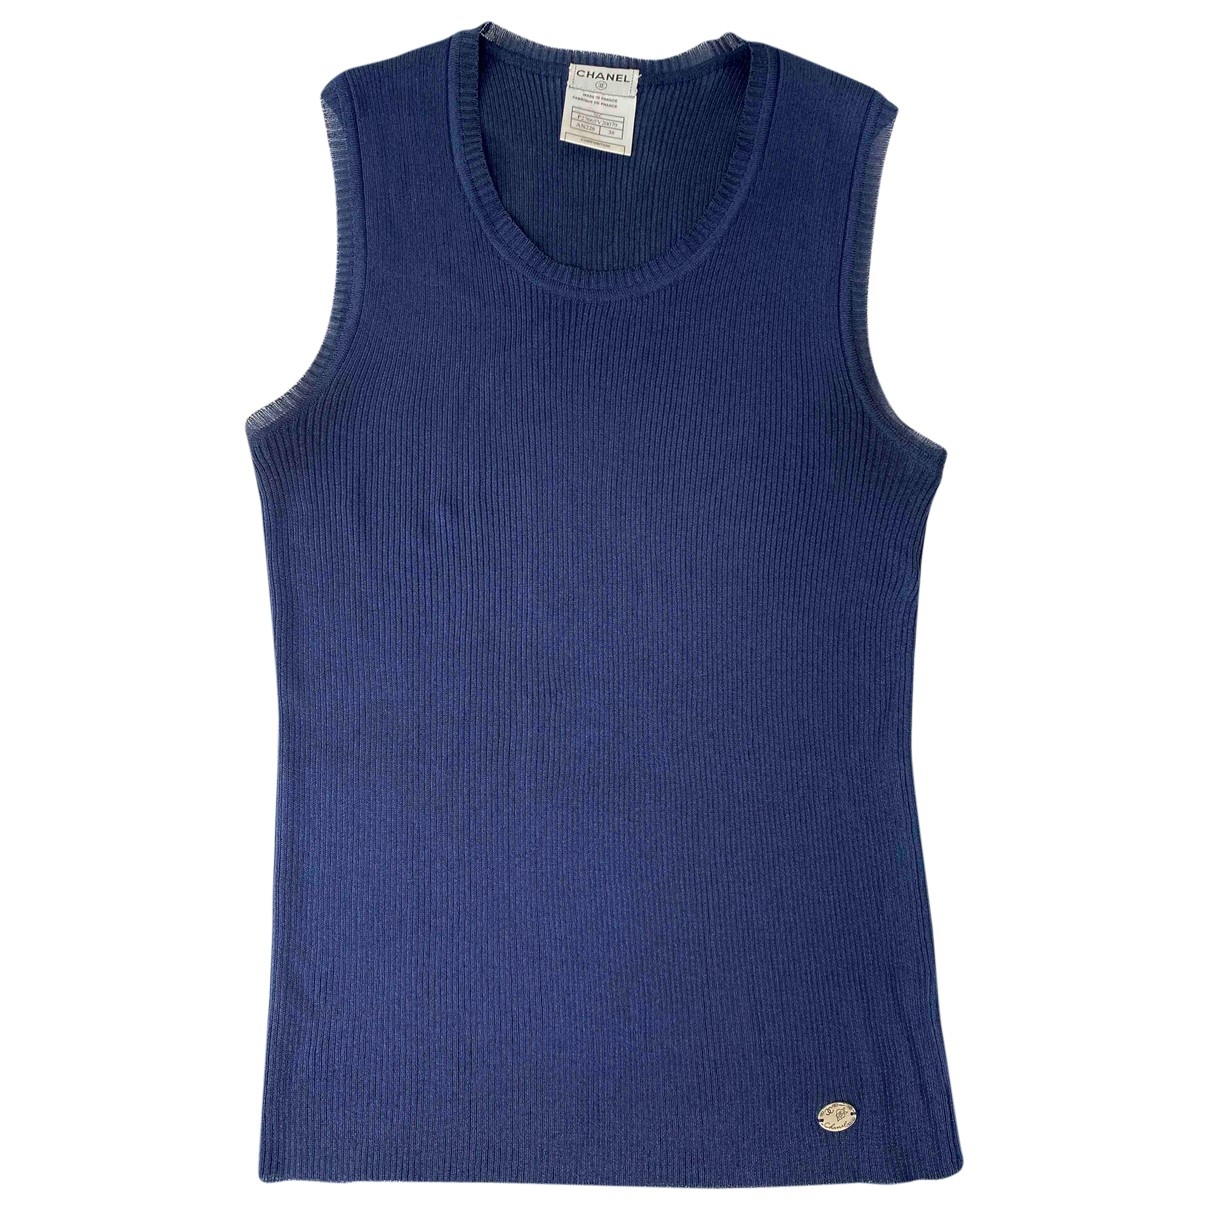 Chanel \N Navy  top for Women 38 FR